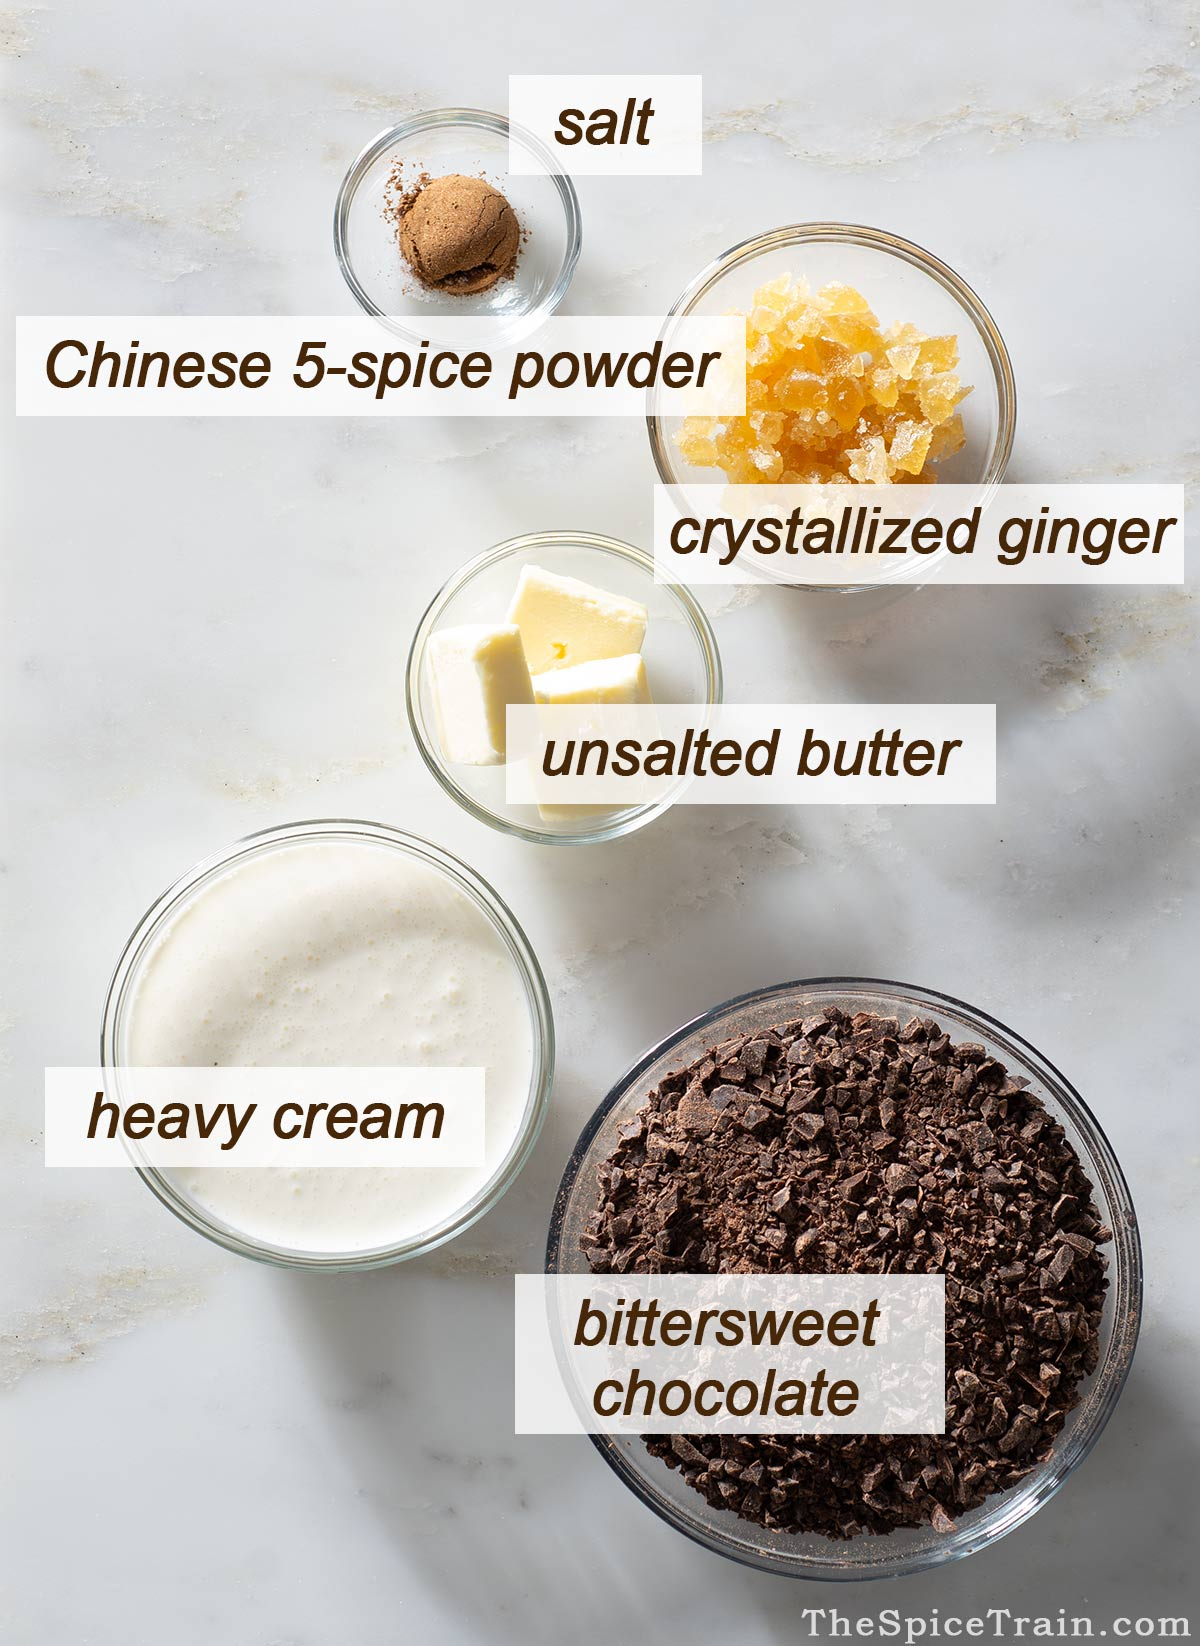 All ingredients needed to make Chinese 5-spice chocolate truffles with crystallized ginger.